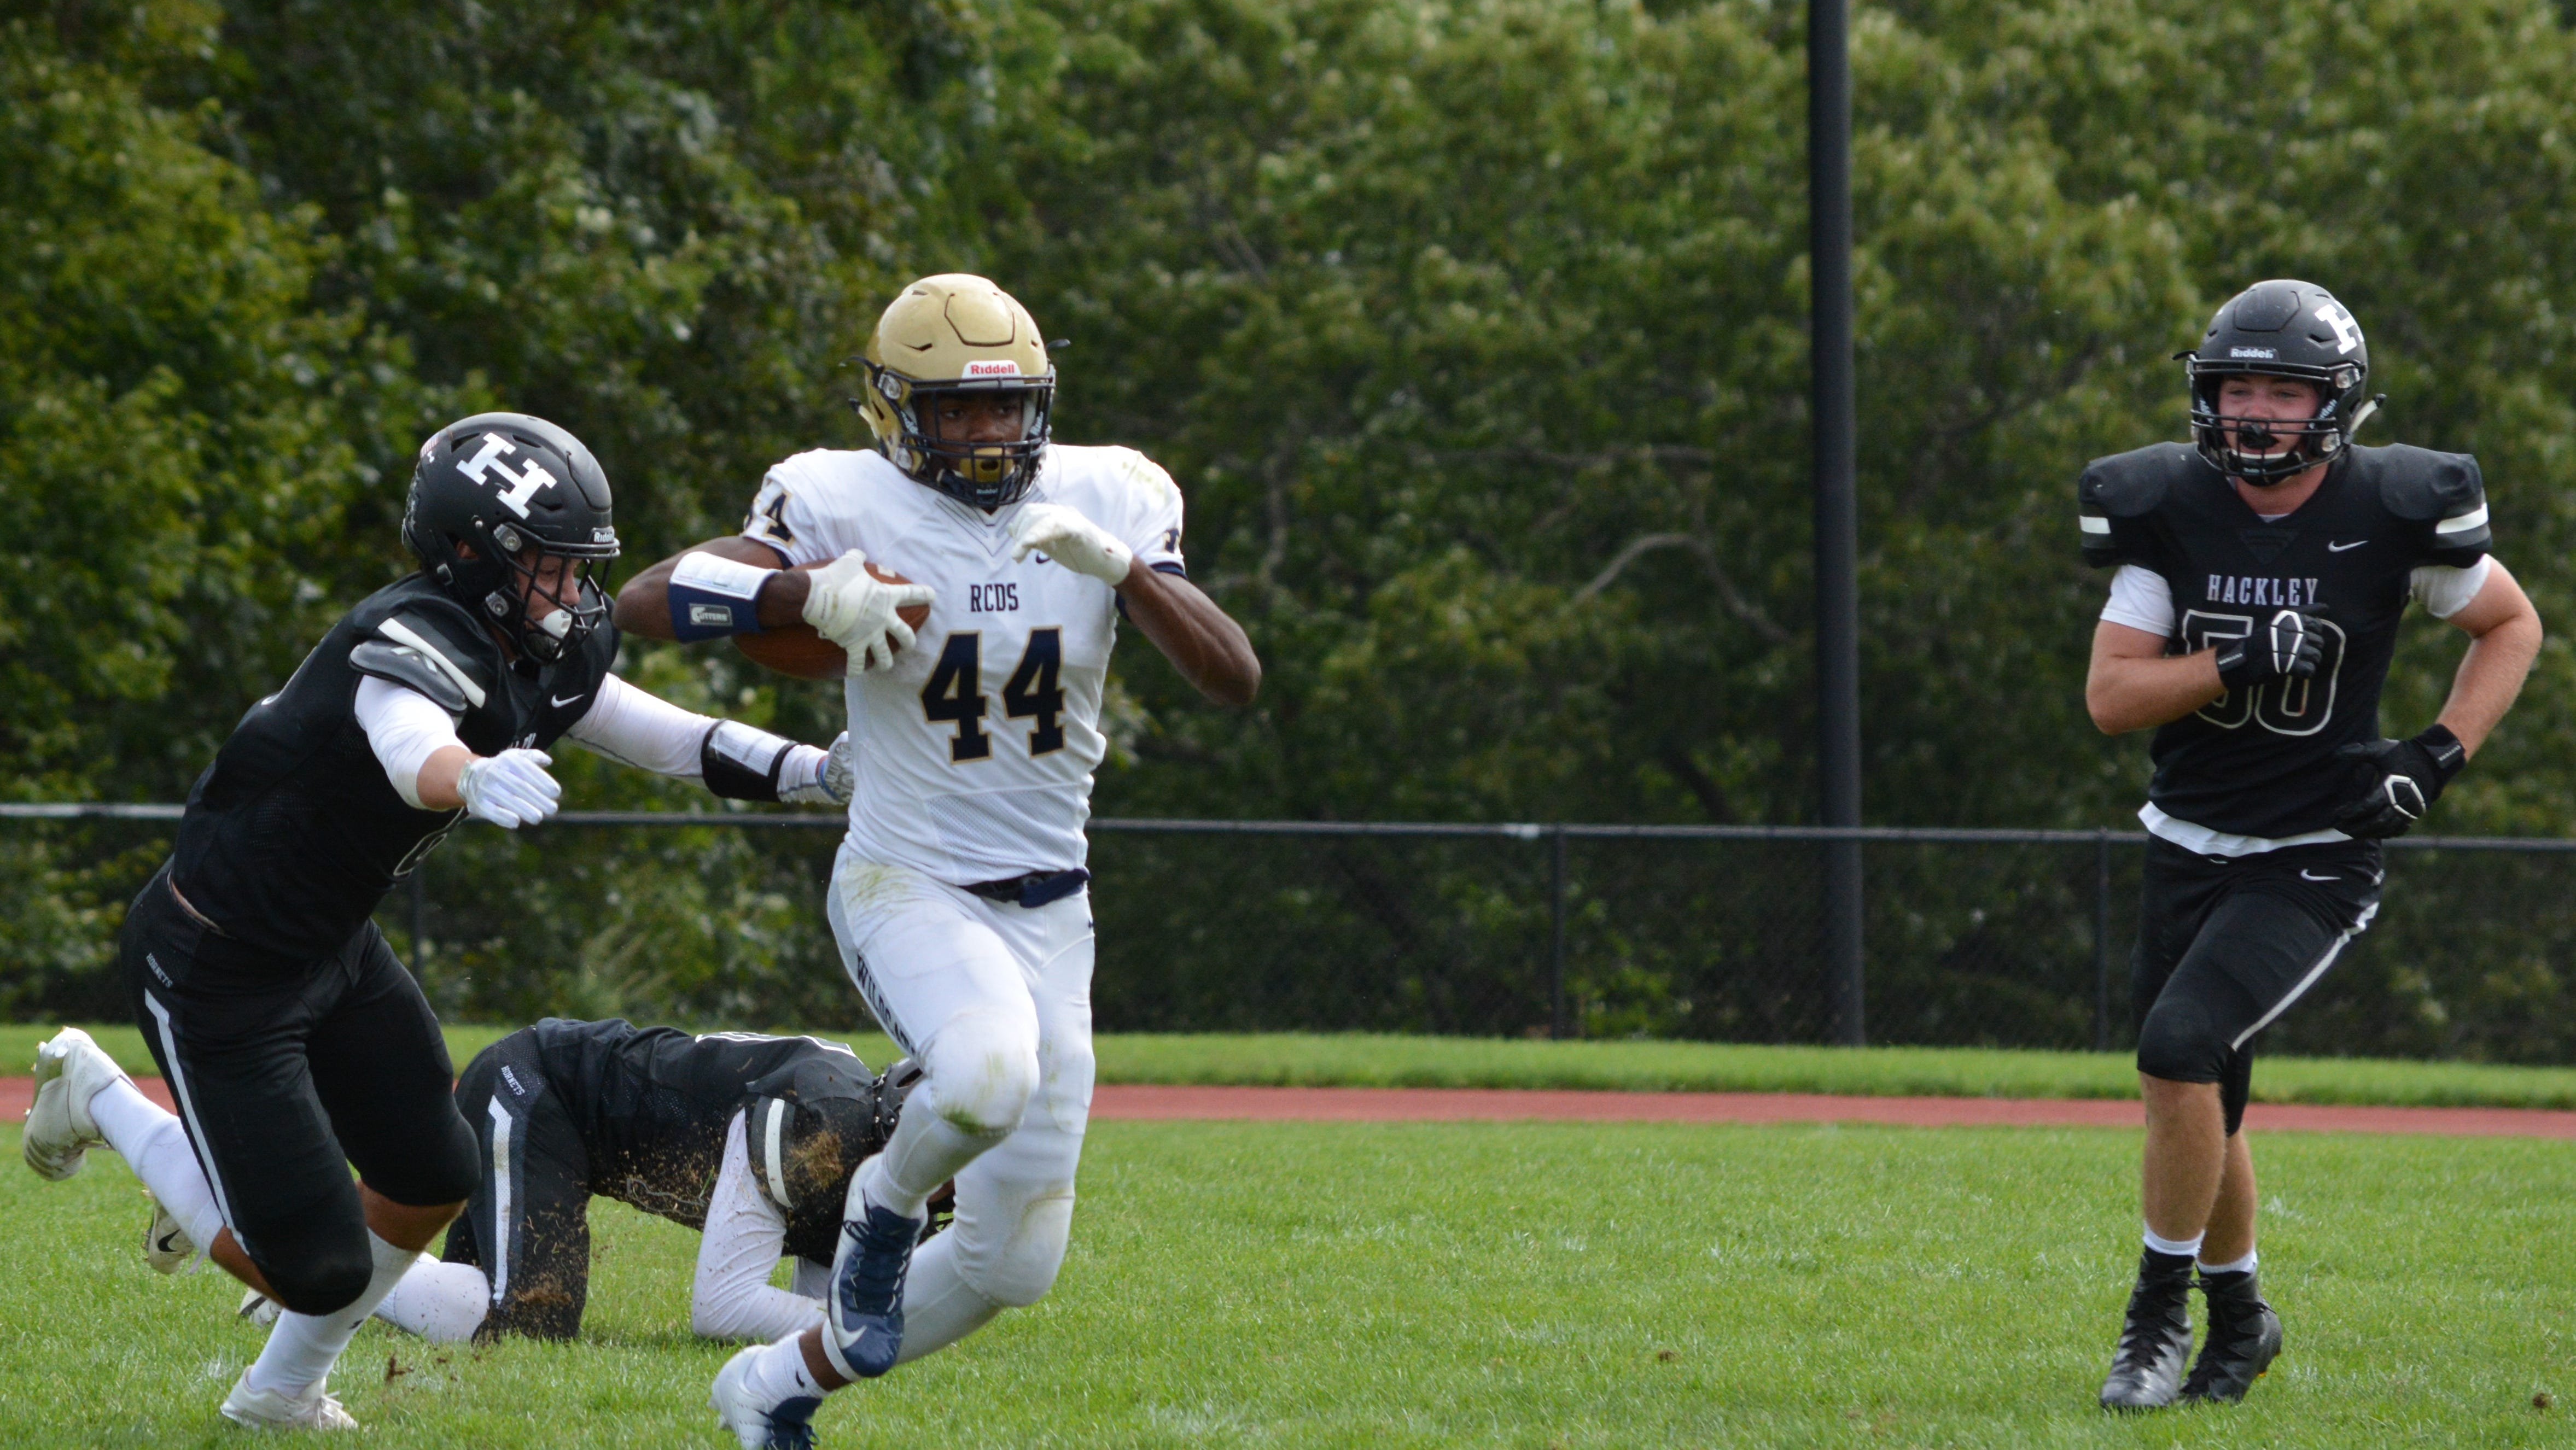 RCDS running back Cullen Coleman avoids the outstretched arms of Hackley defensive back Walter Myers on Saturday.